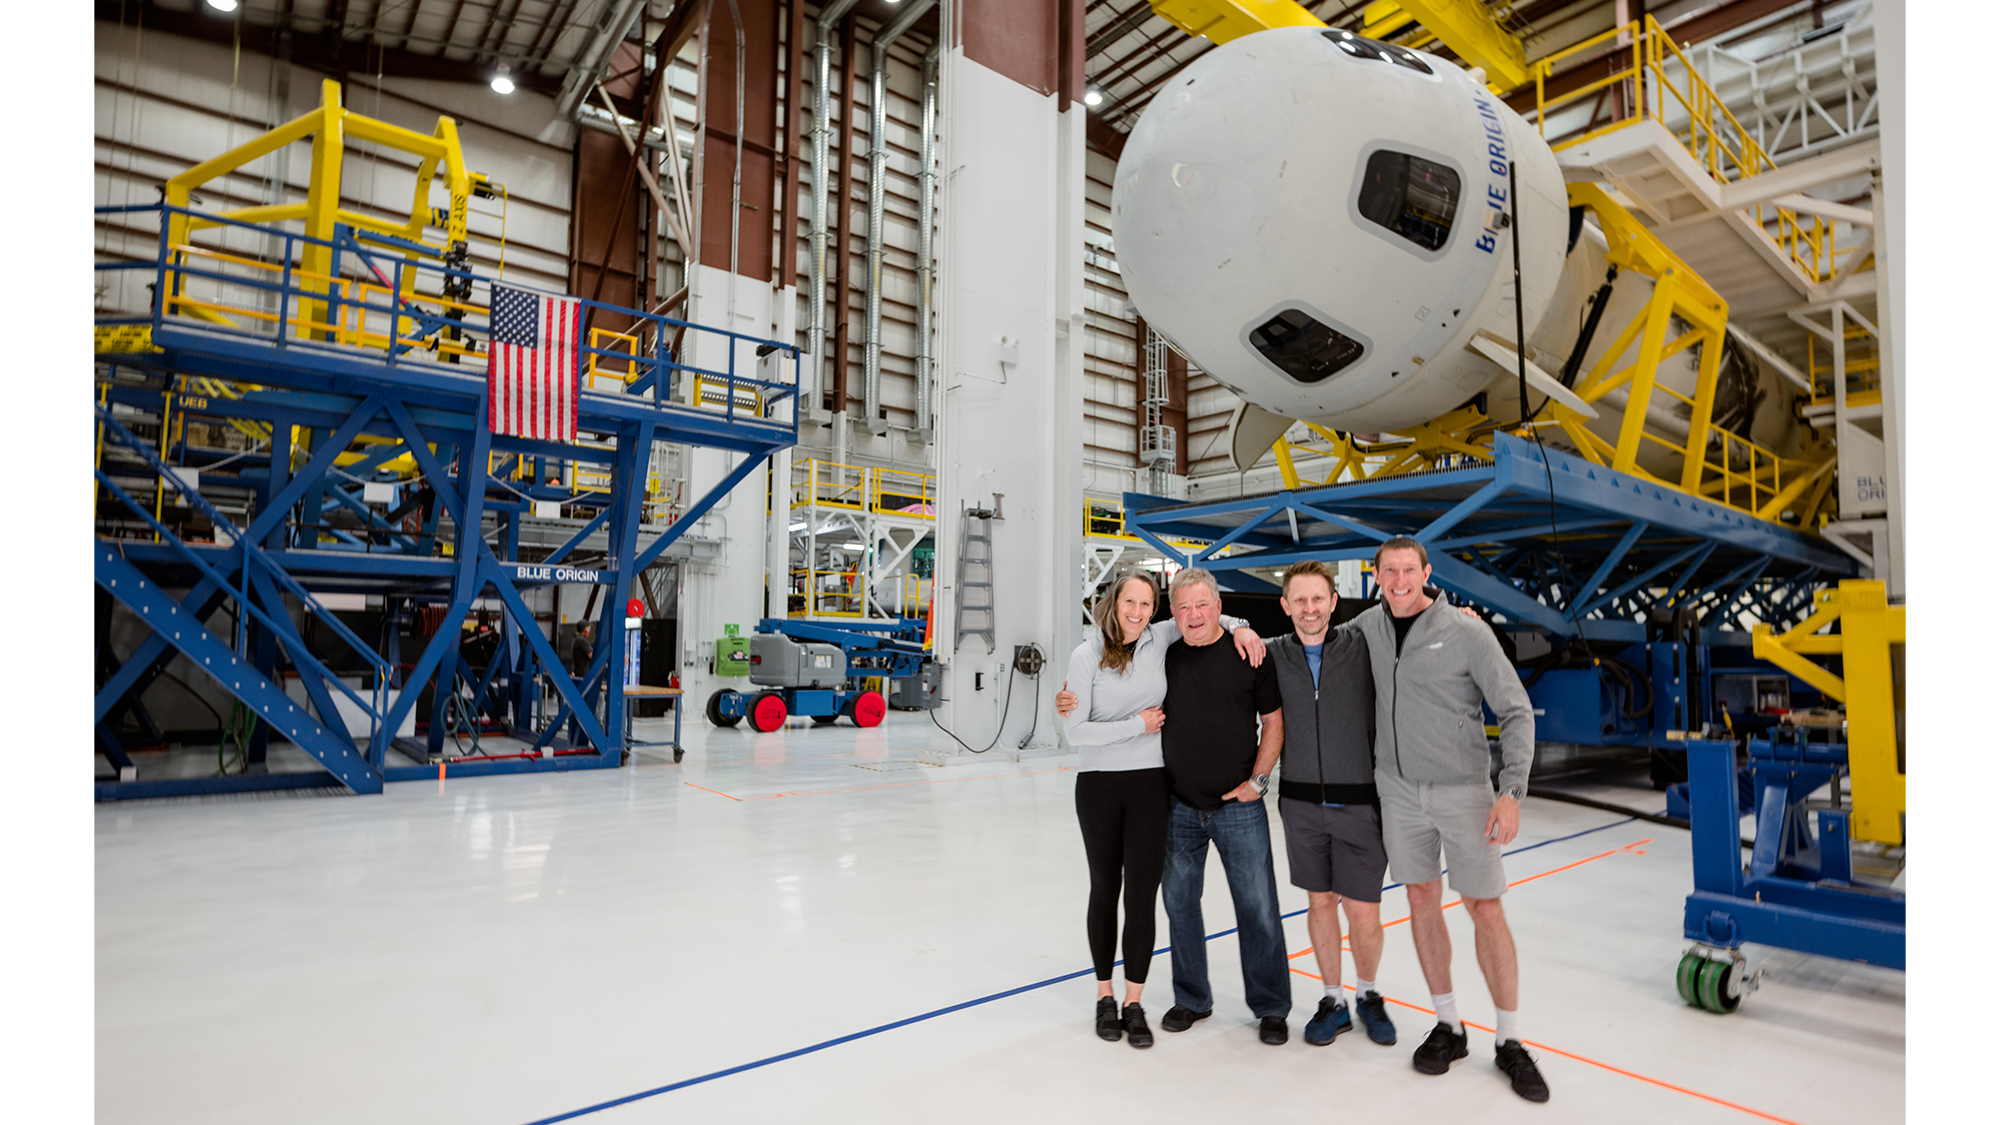 Blue Origin's New Shepard rocket 'go' to launch William Shatner and crew to space thumbnail